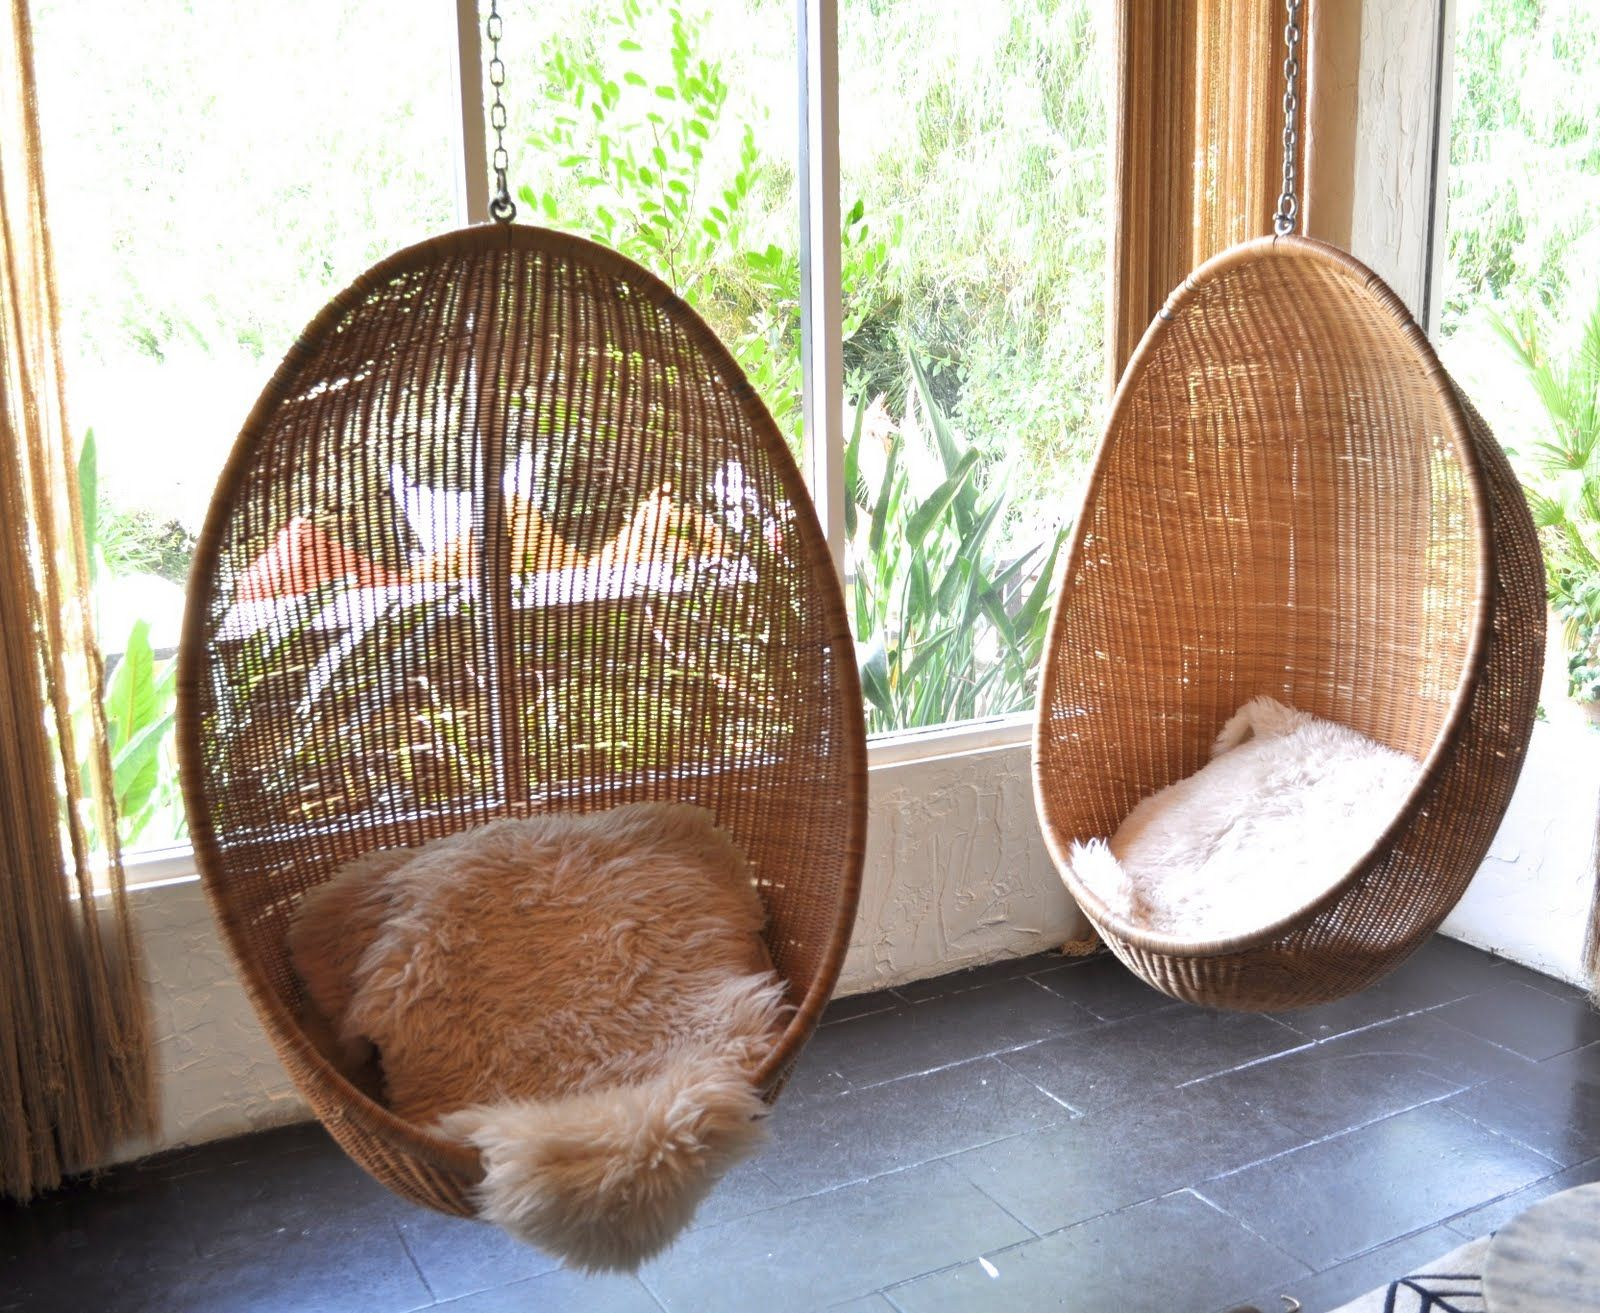 Hanging Egg Pod Chair Egg Hanging Seats Hanging Basket Chair Nz Hanging Basket